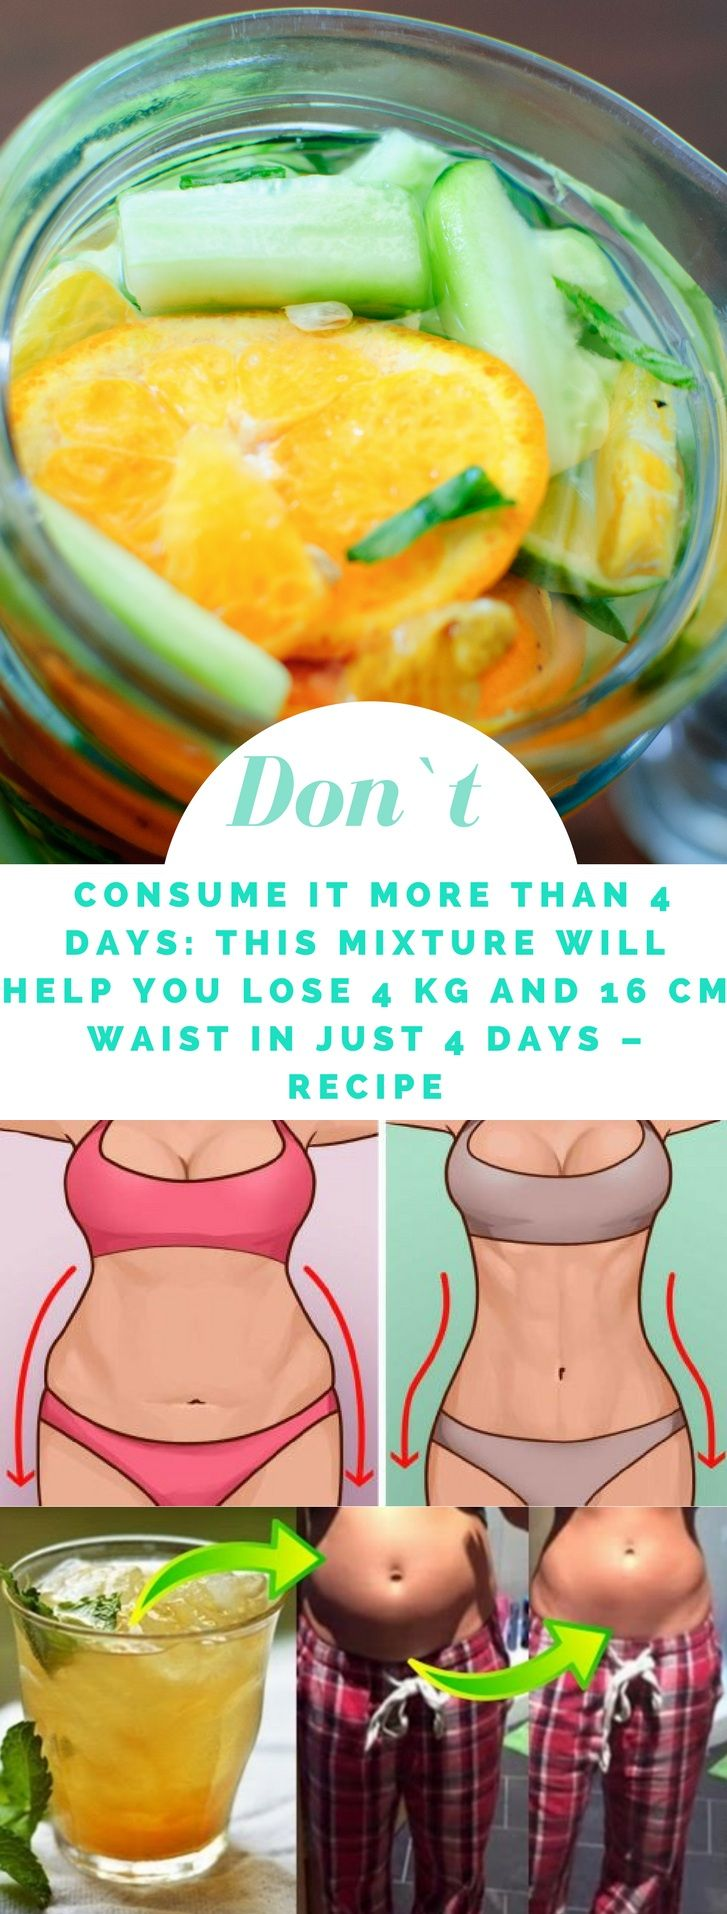 Don't Consume It More Than 4 Days: This Mixture Will Help You Lose 4 kg And 16 cm Waist In Just 4 Days – Recipe #mixture #weightloss #waist #recipe #natural #diy